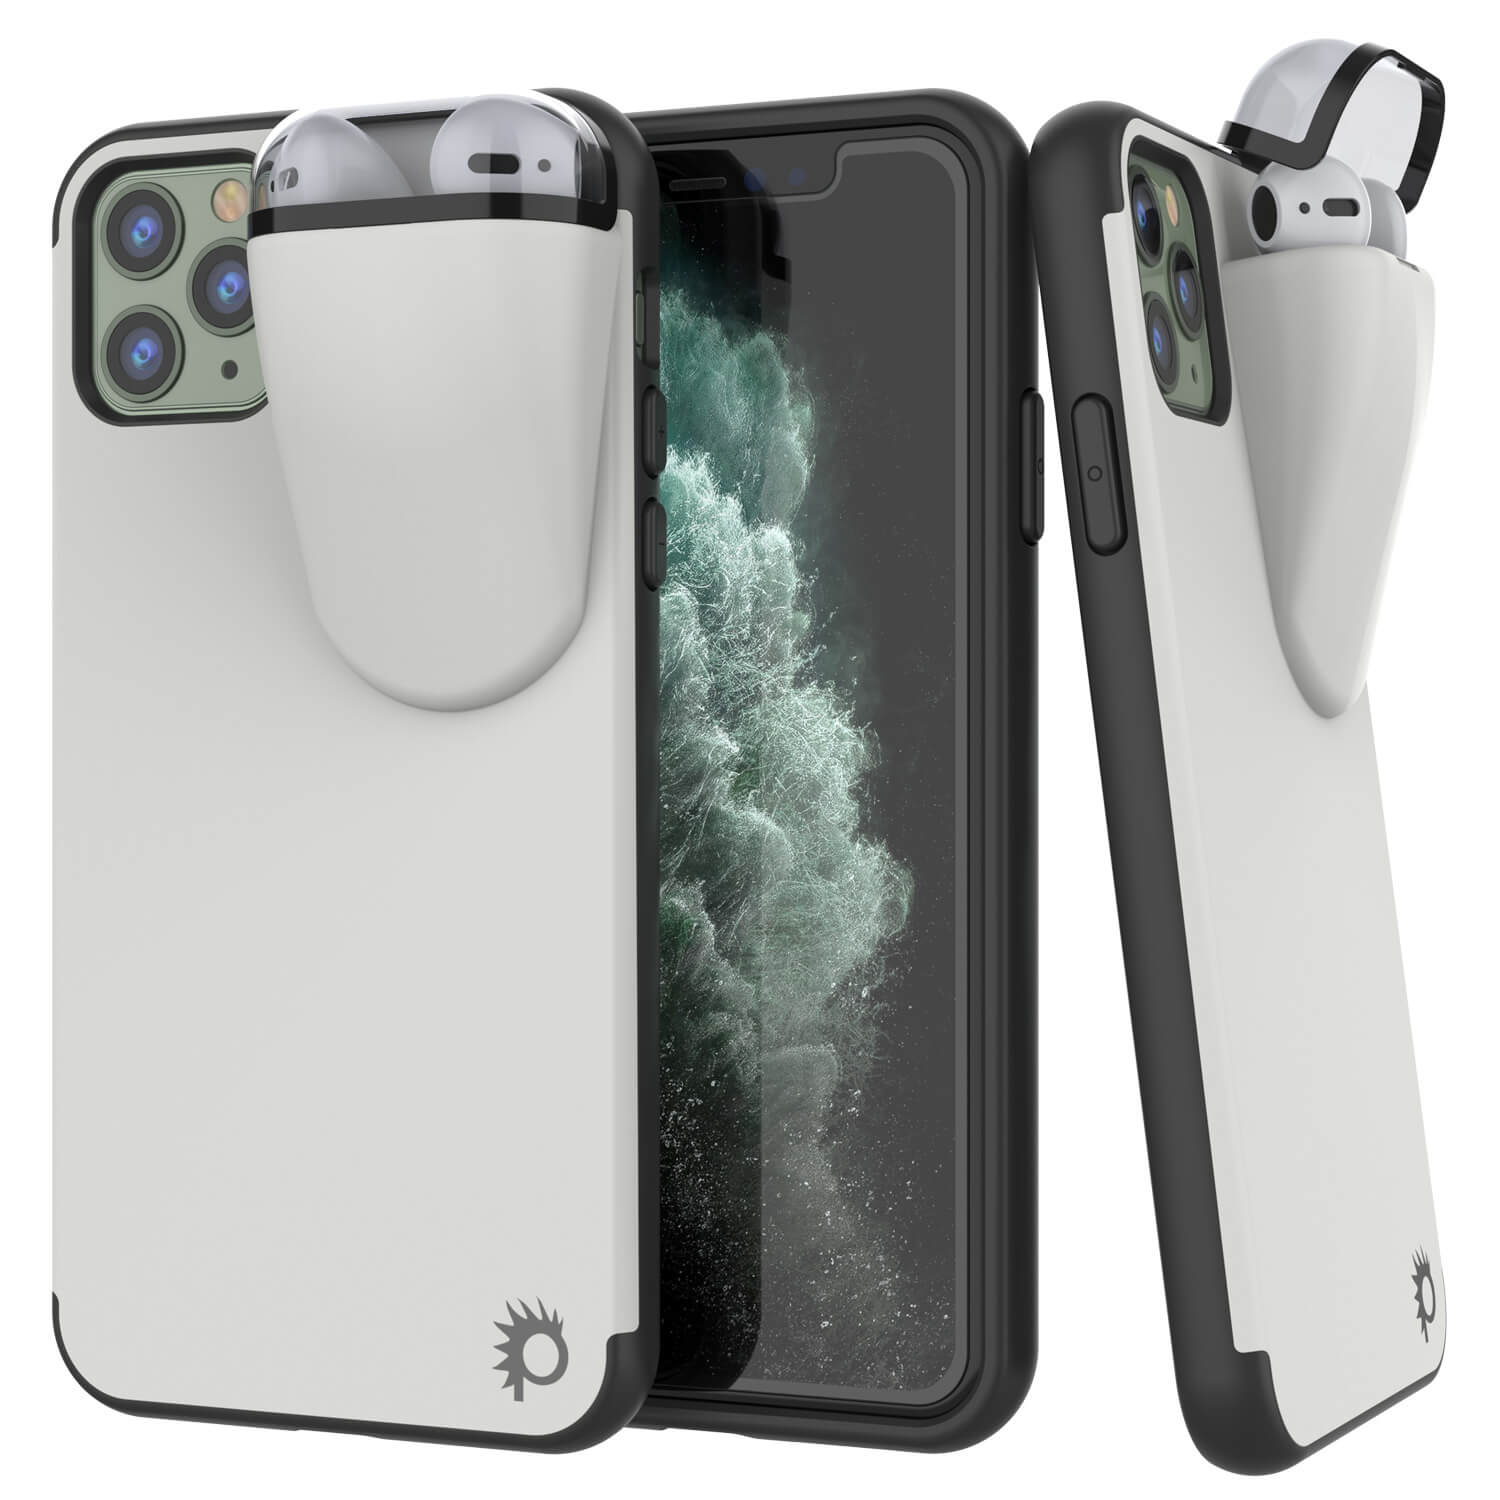 "Punkcase iPhone 11 Pro Max Airpods Case Holder (TopPods Series) | Slim & Durable 2 in 1 Cover Designed for iPhone 11 Pro Max (6.1"") 